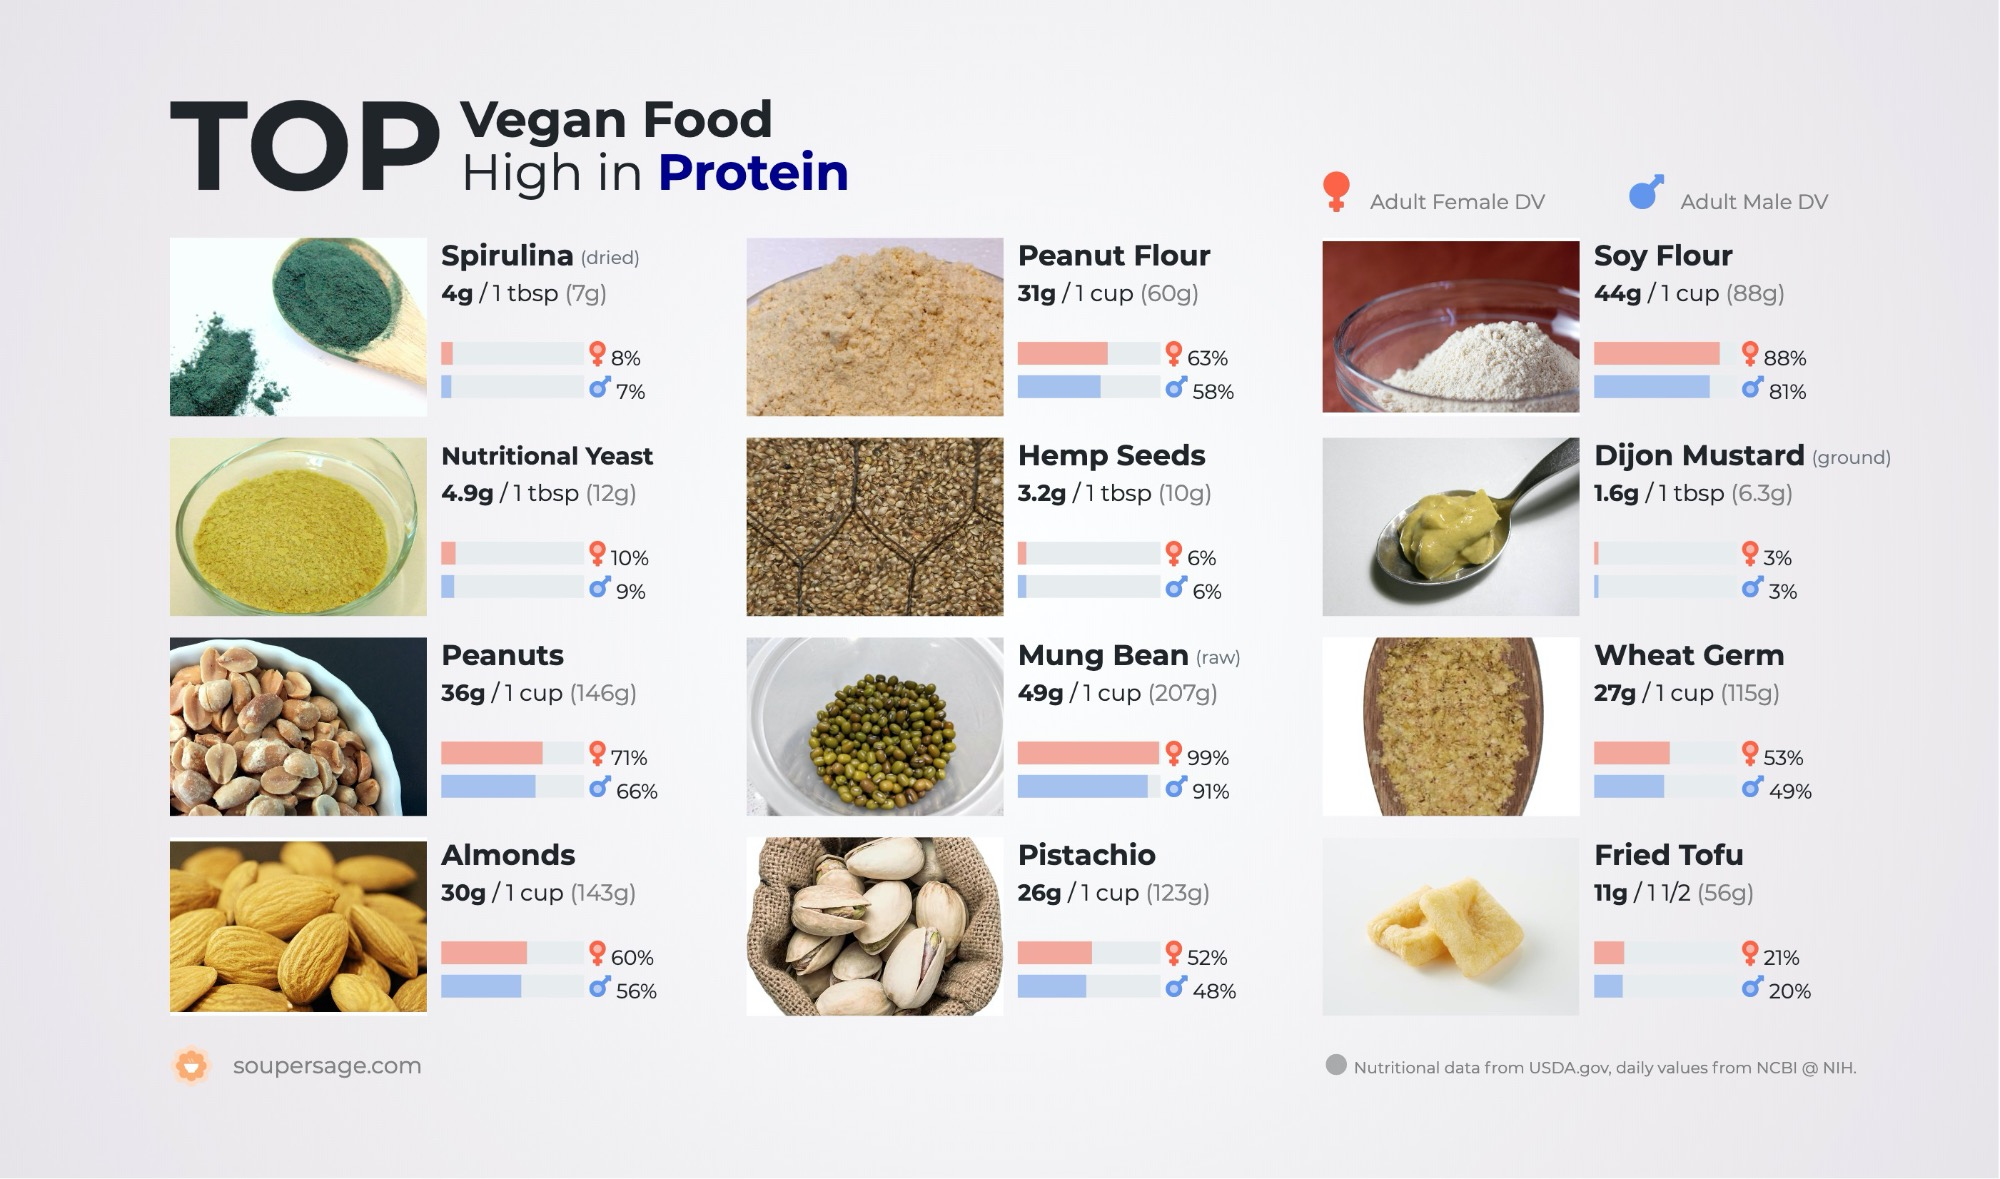 image of Top Vegan Food High in Protein